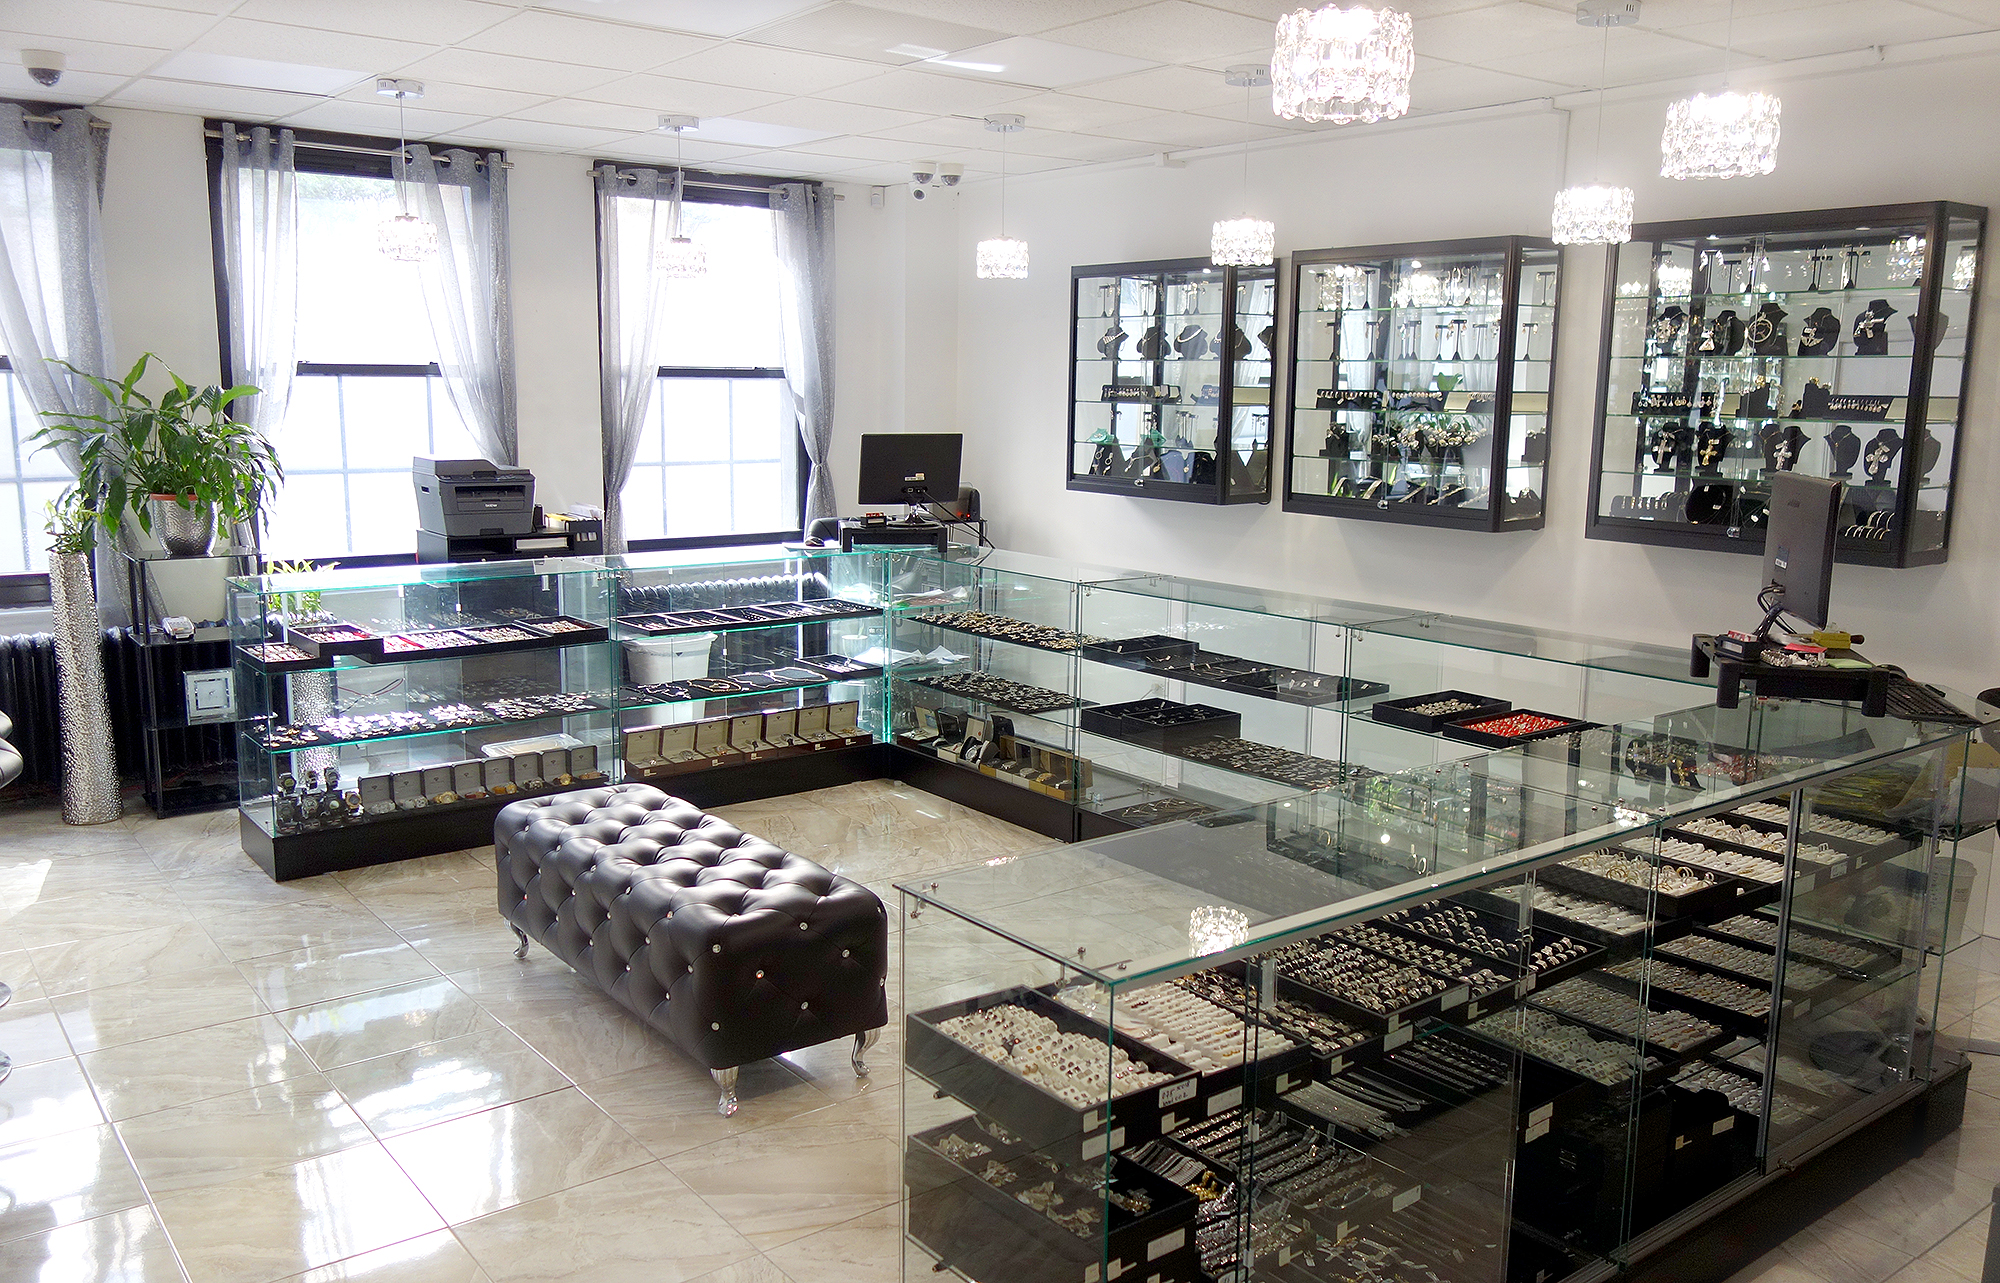 ItsHot.com Diamond Jewelry Showroom view #2